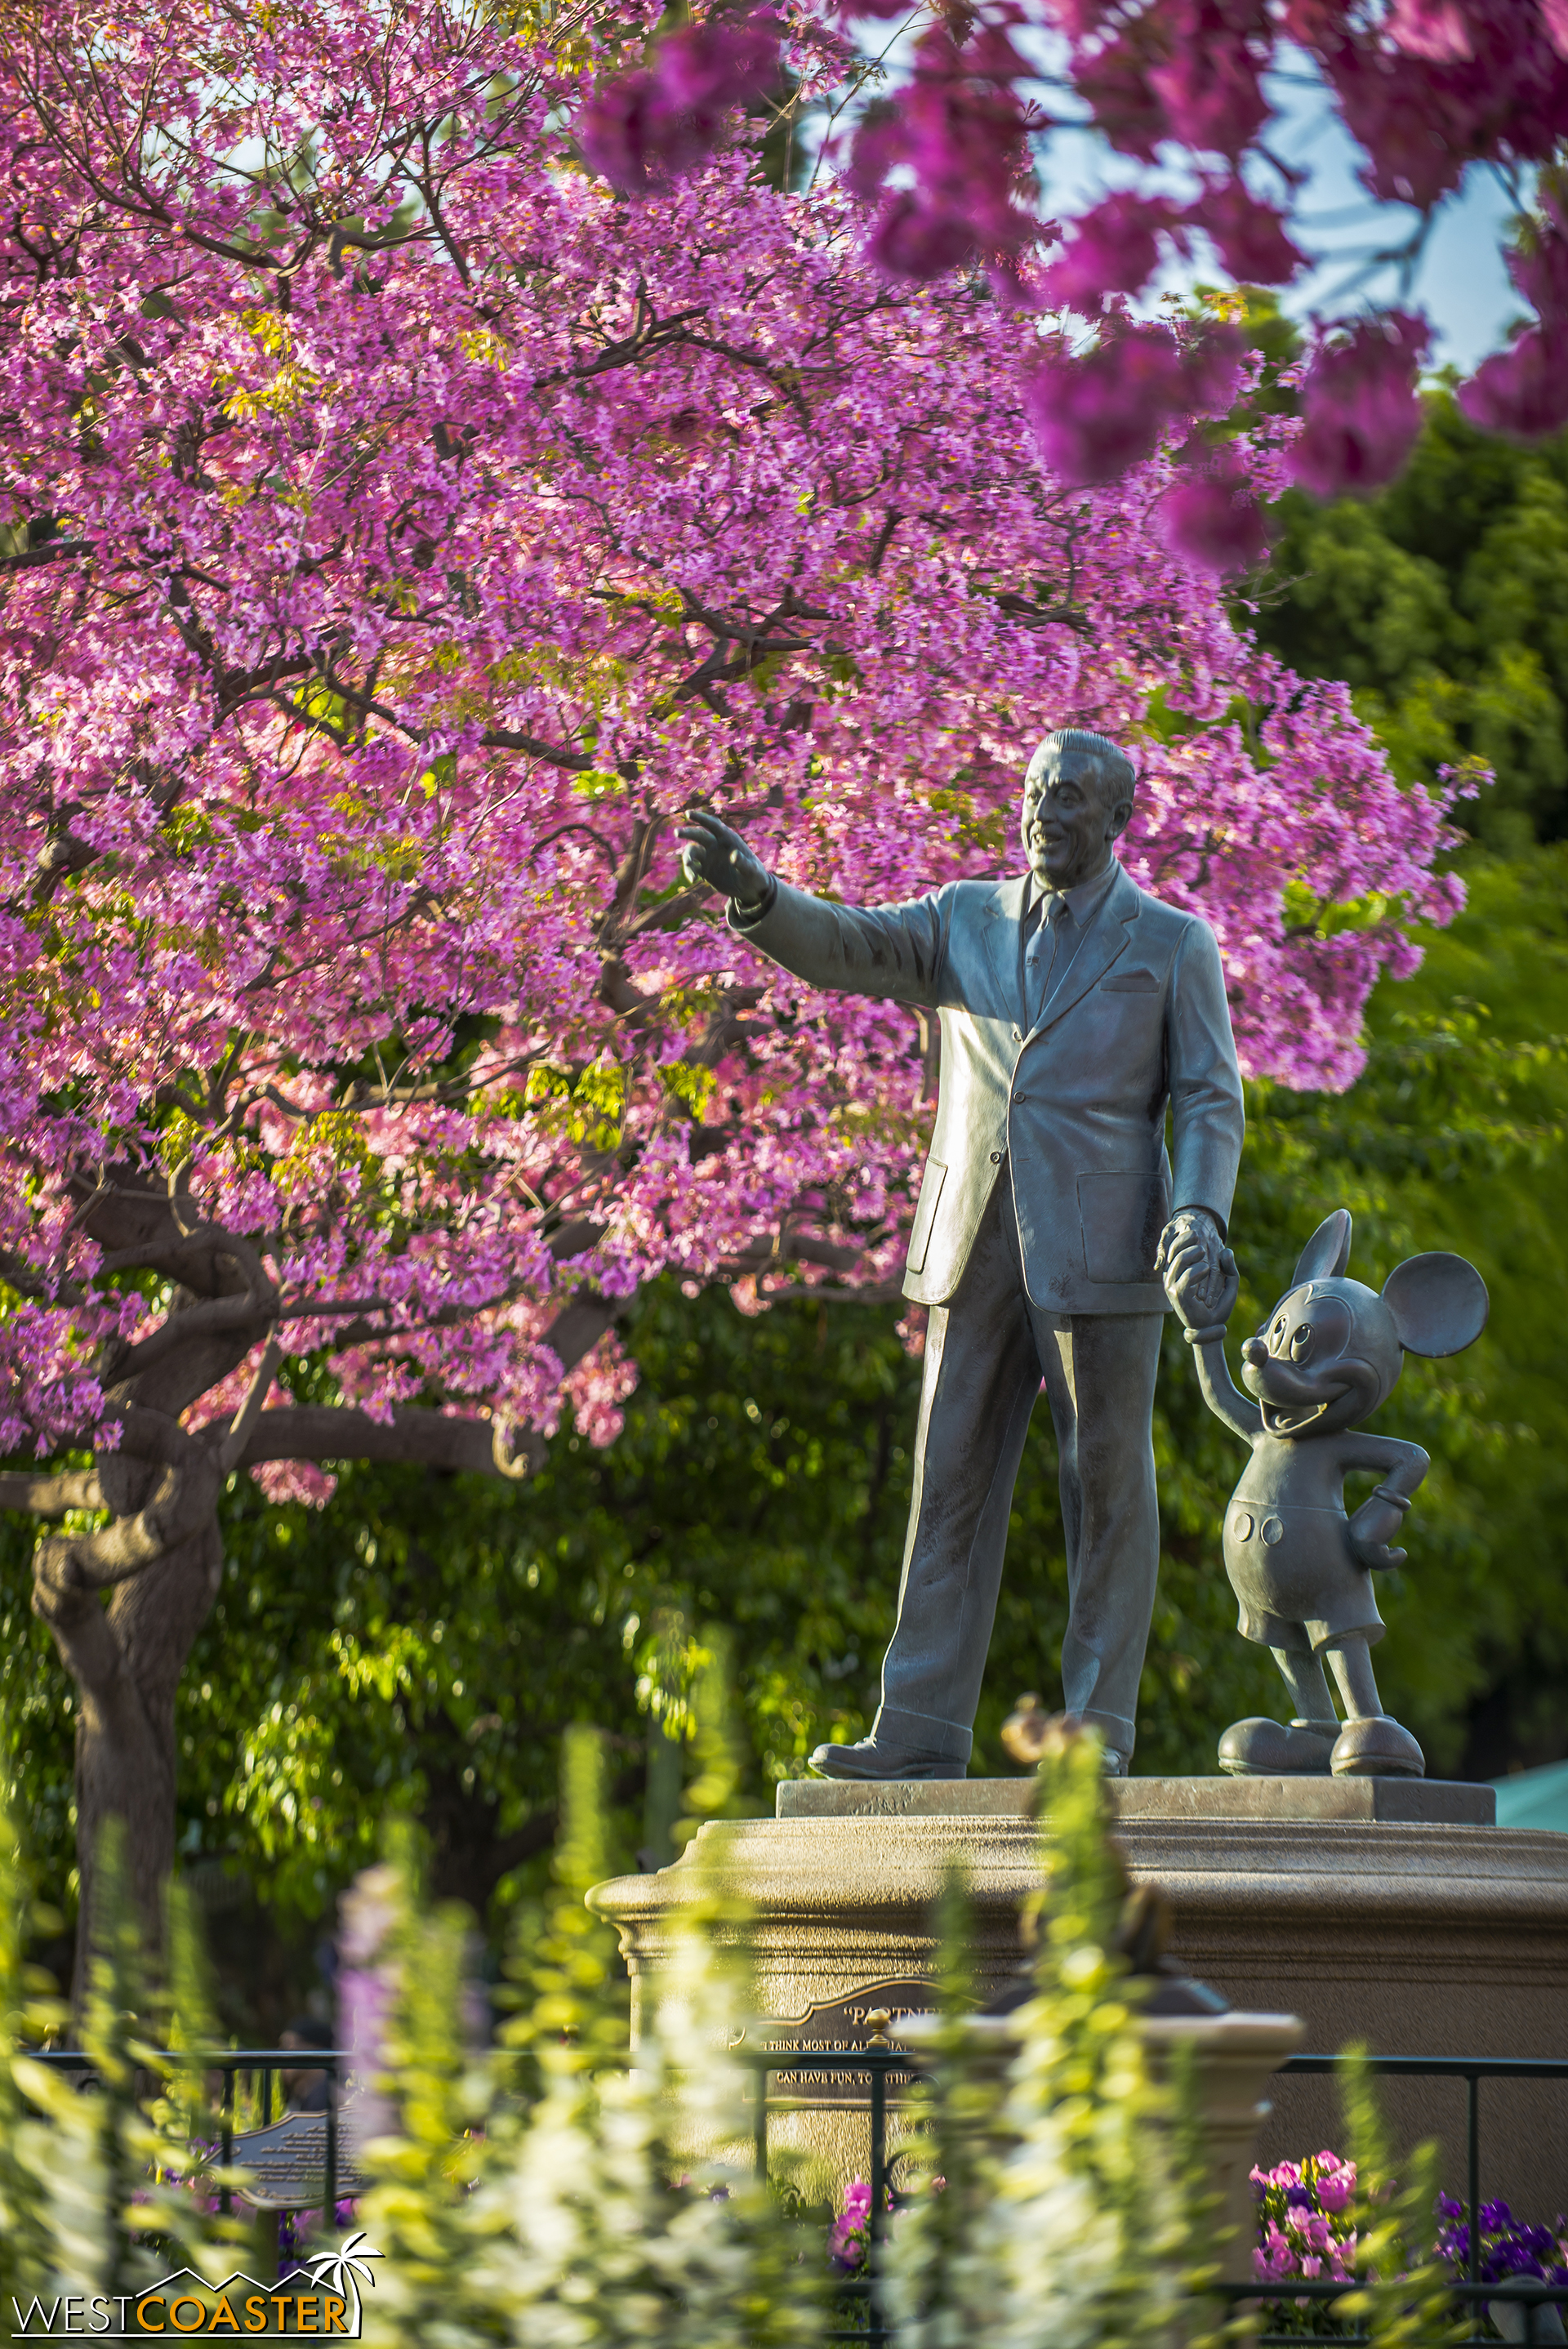 The tabebuias over at The Hub in Disneyland have also started turning their beautiful springtime pink, which is pretty fantastic.